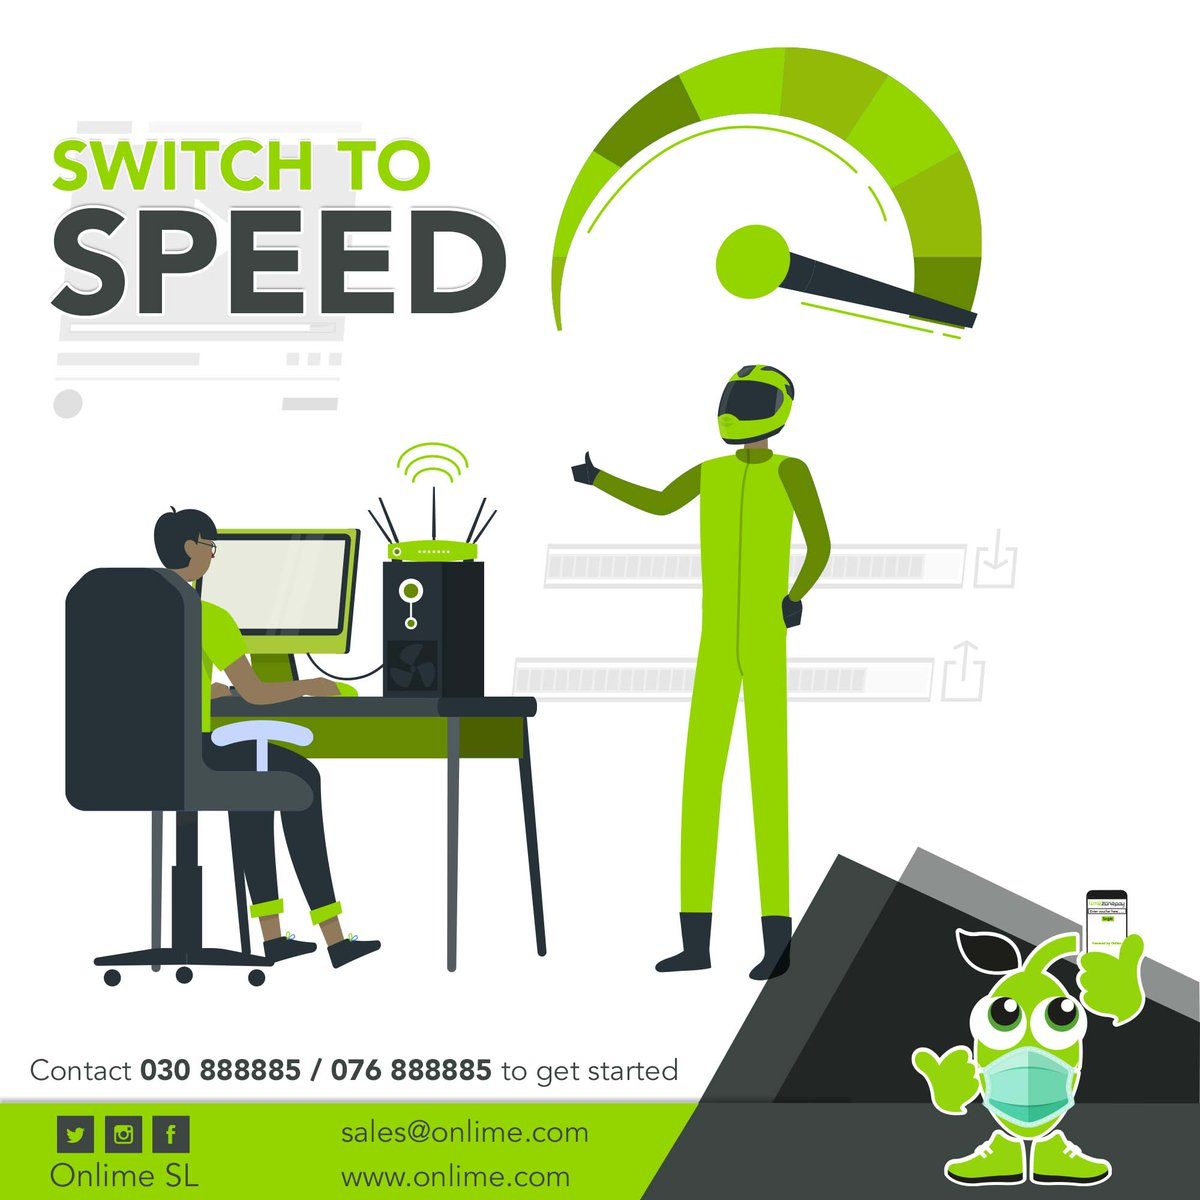 Switch to #onlime internet today and say goodbye to slow connection. Enjoy uninterrupted streaming at Super-Fast Speeds with #OnlimeInternet Call 076 888885 / 030 888885 or email sales@onlime.sl for more info. #SierraLeone #Freetown #SaloneTwitter https://t.co/JrtWpuMjoC